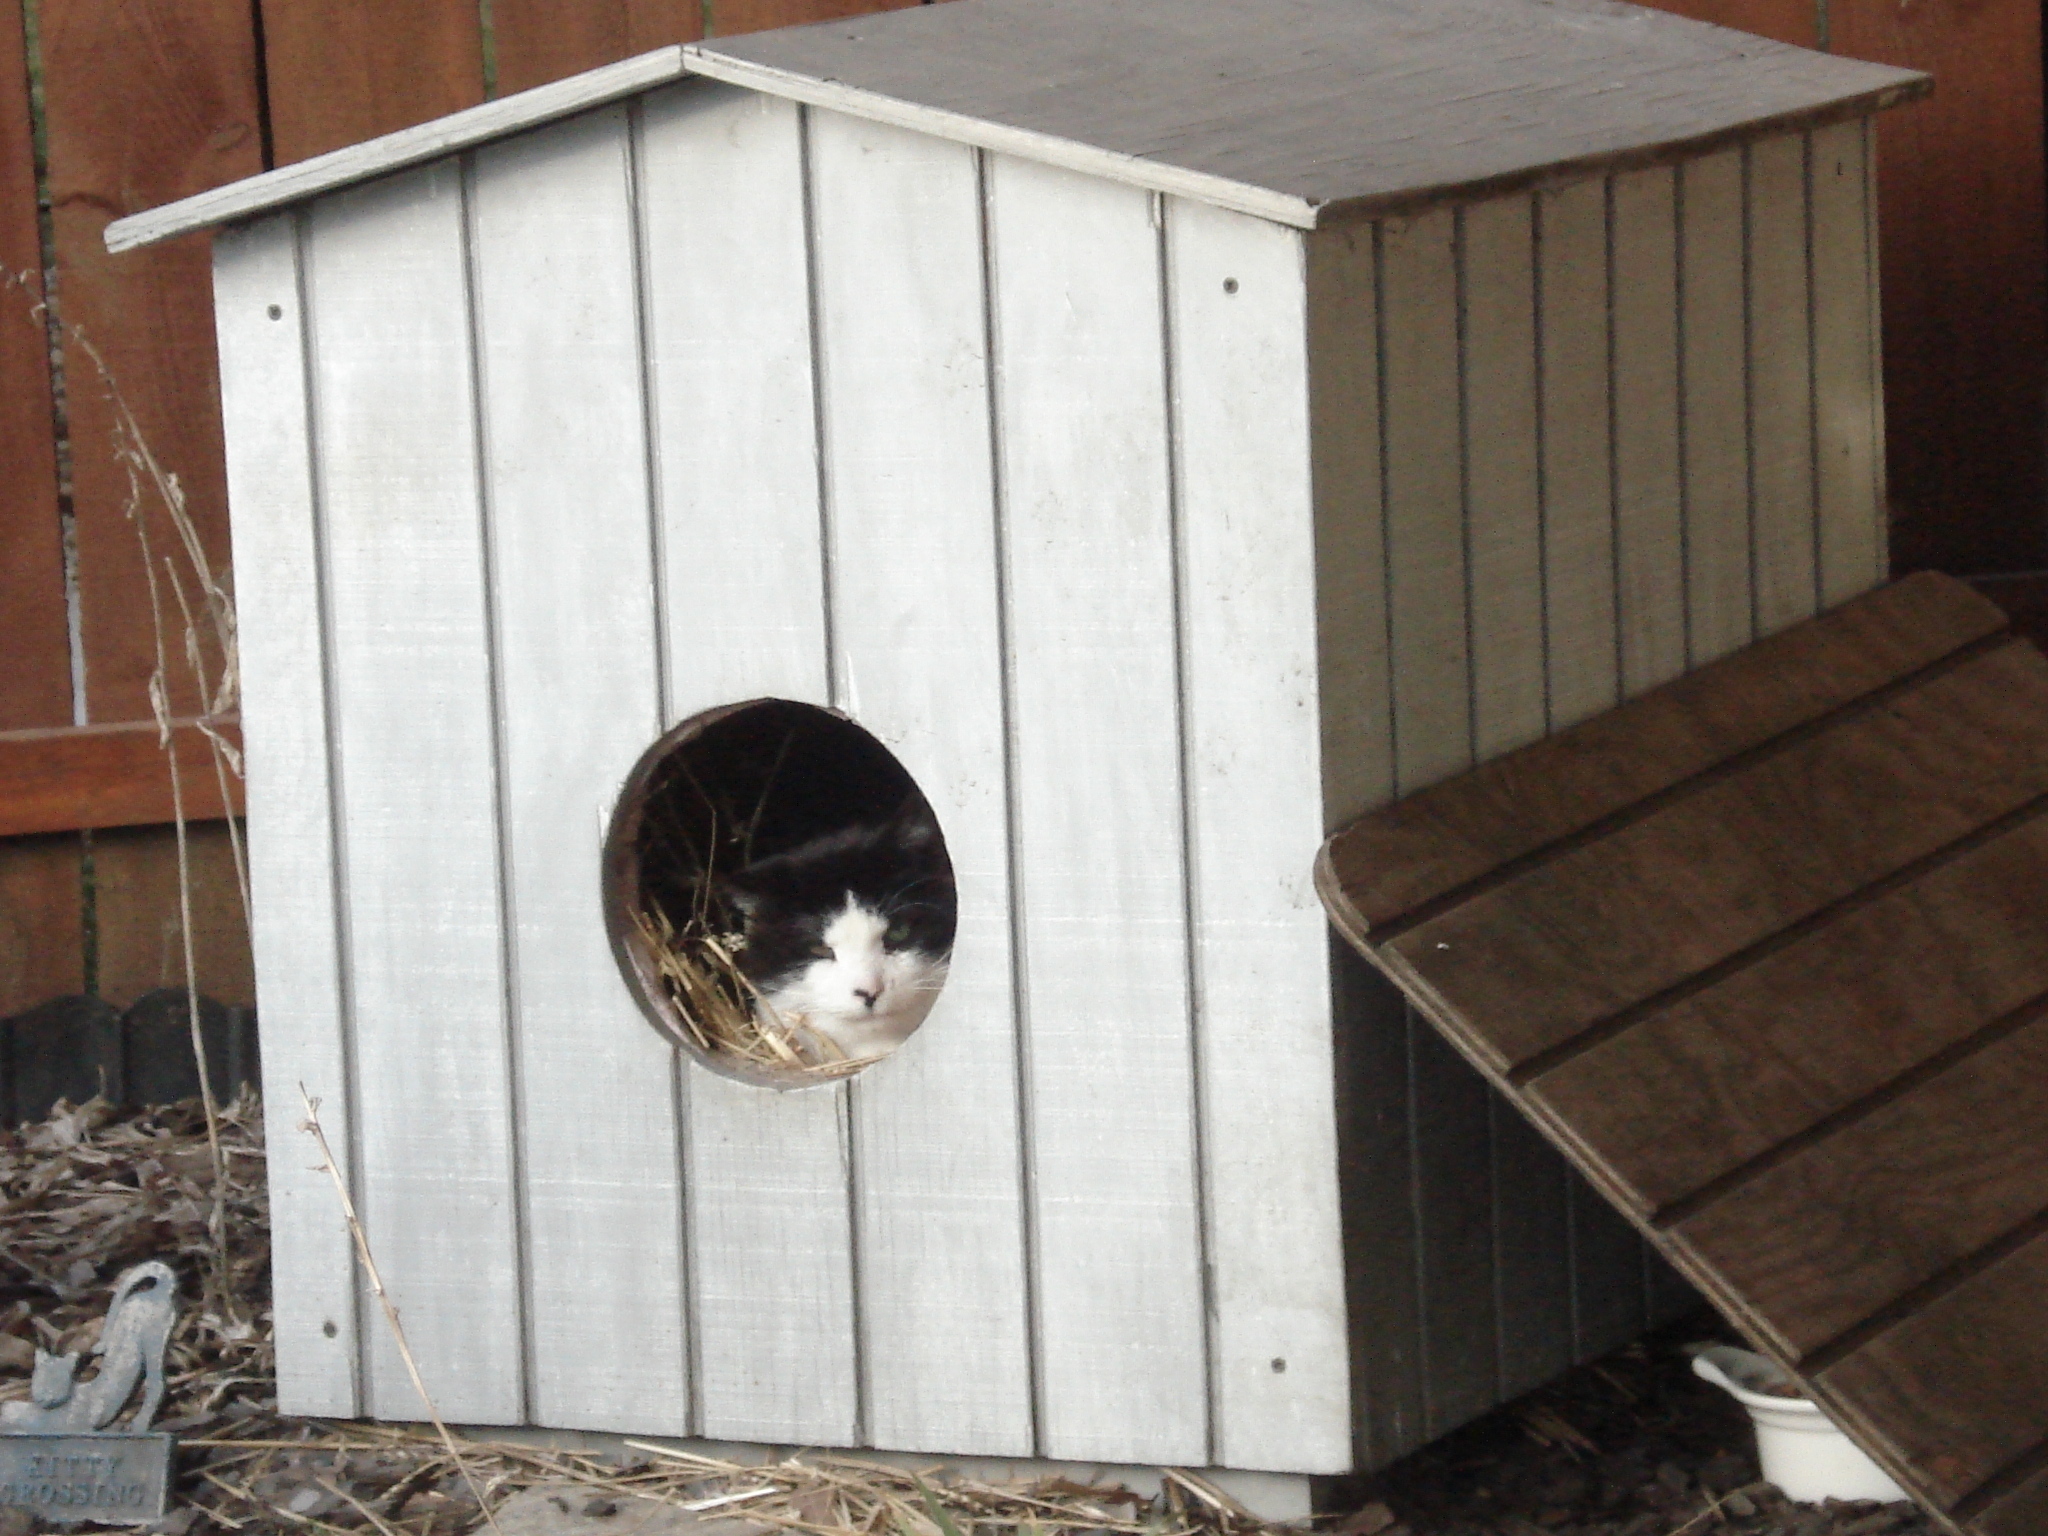 How to Make Cat Houses From Rubbermaid Totes | eHow